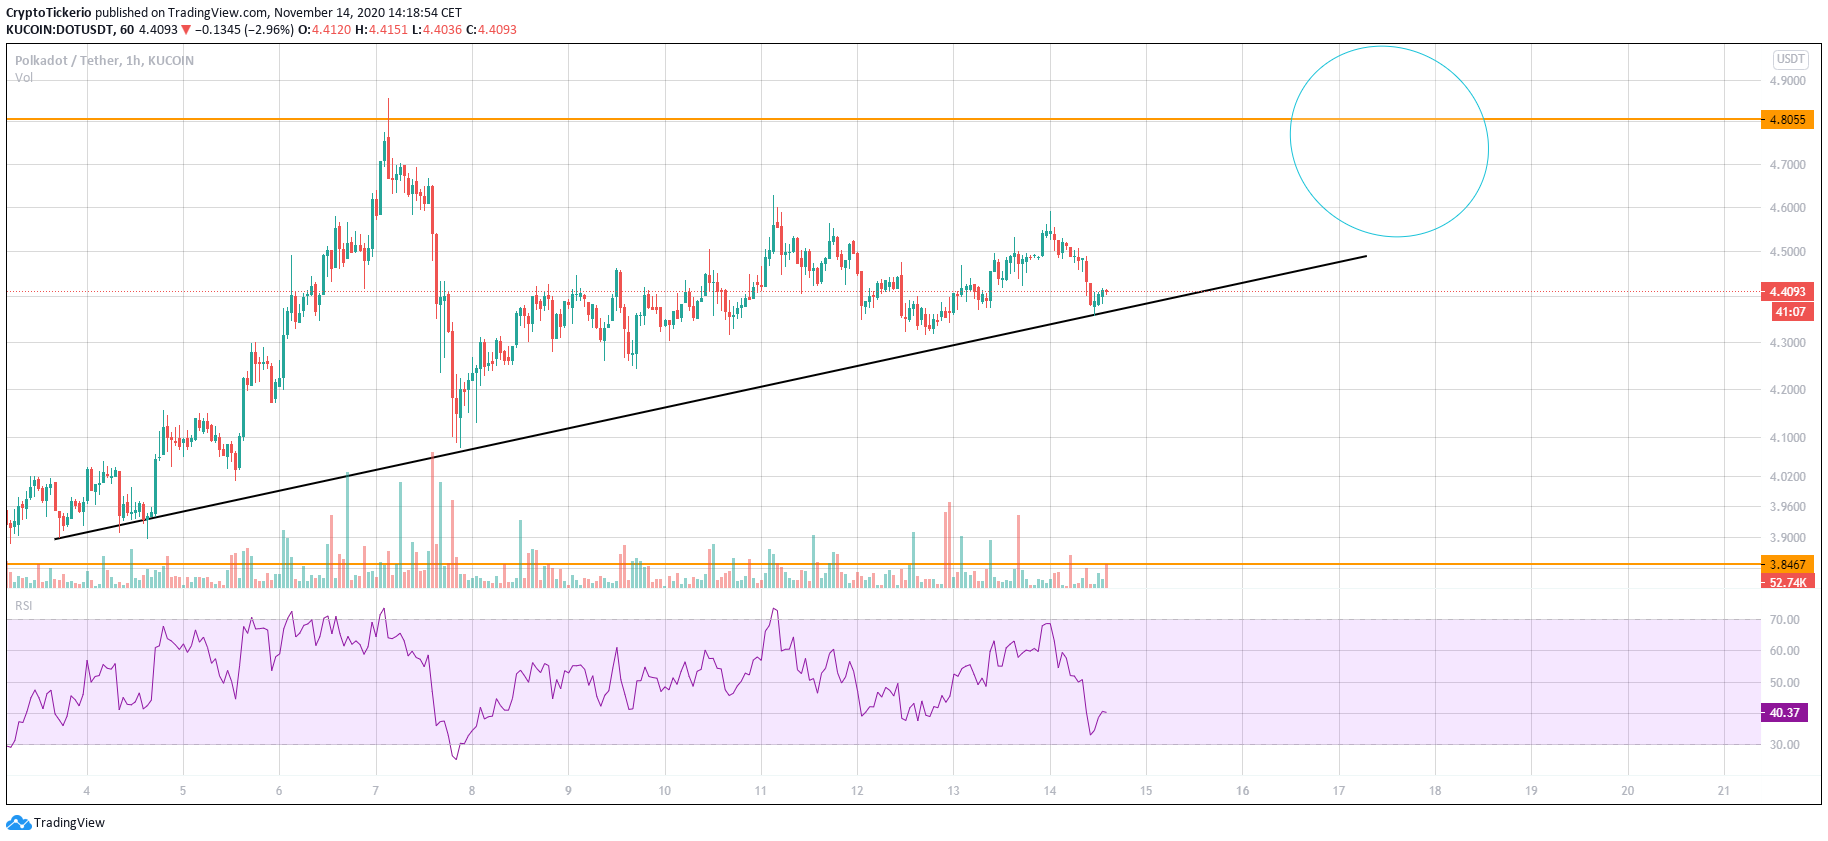 DOT/USDT 1 Hour chart showing the uptrend